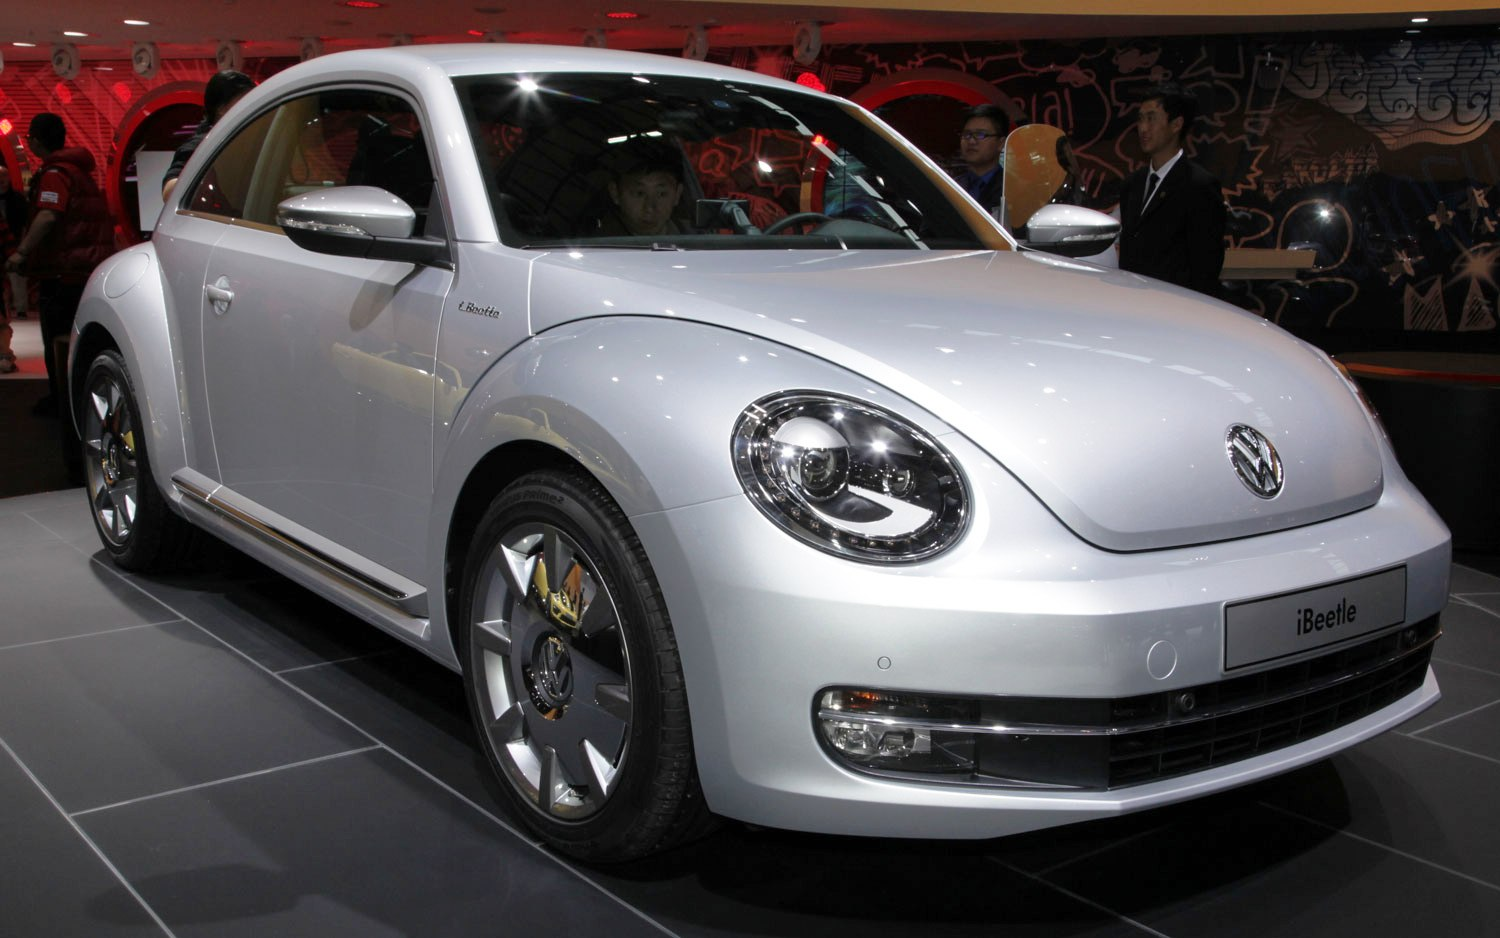 2014 Volkswagen IBeetle (View 4 of 6)